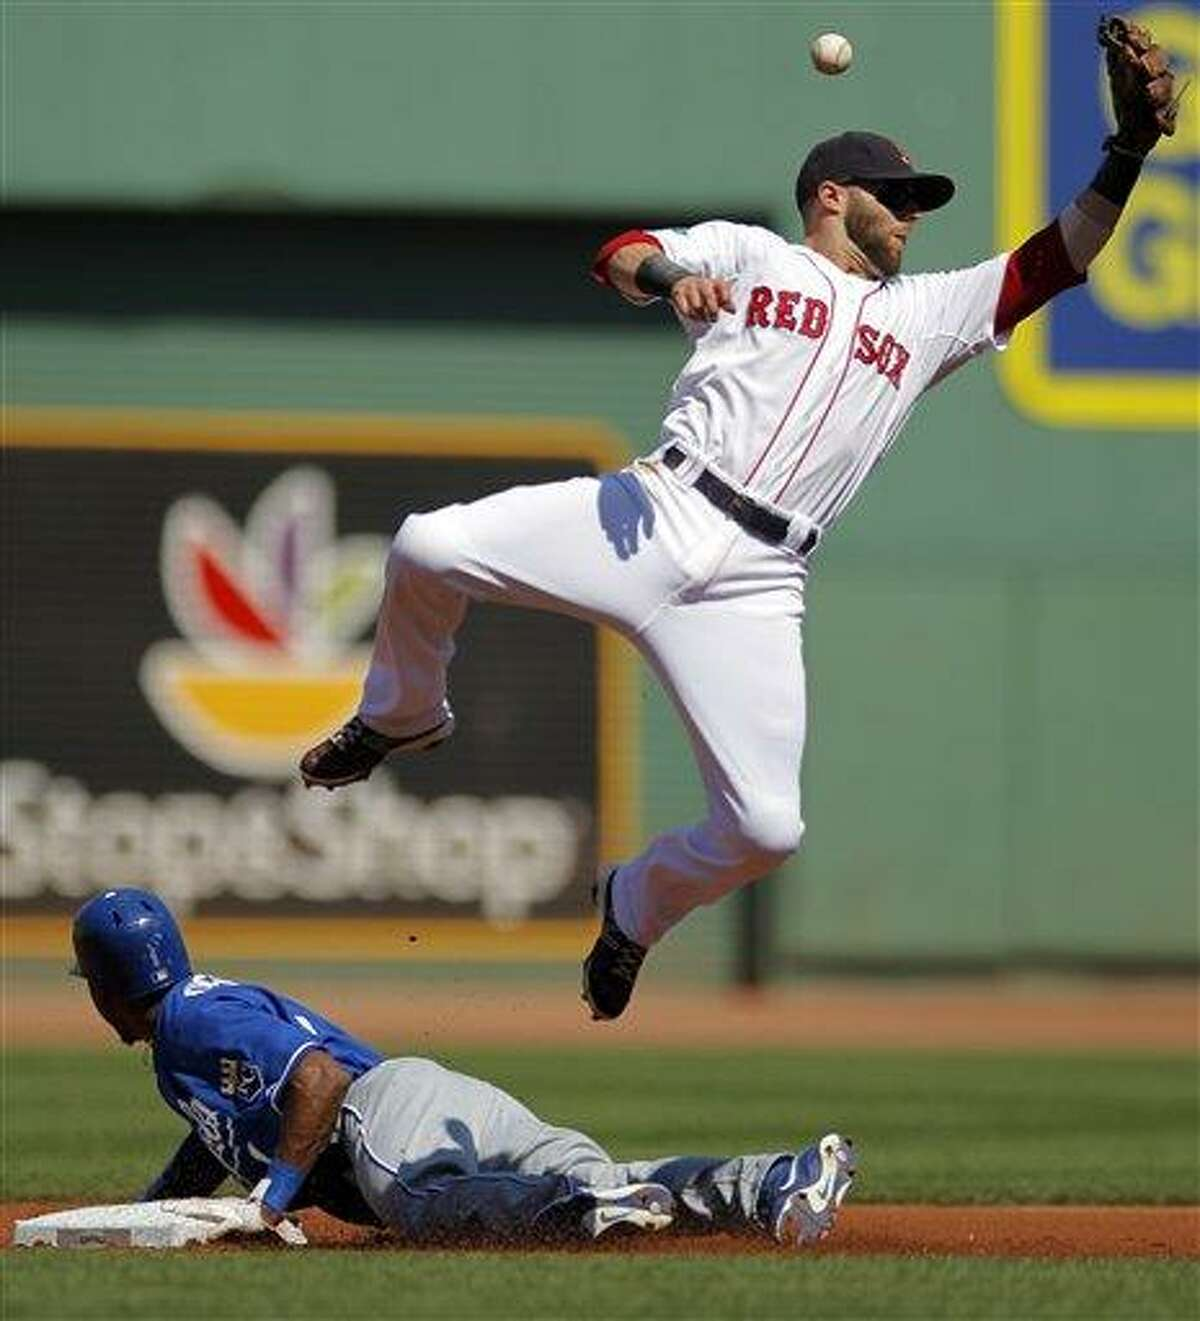 Kansas City Royals' Jarrod Dyson, bottom, steals second base as Boston Red Sox's Dustin Pedroia tries to get his glove on the ball in the first inning of a baseball game at Fenway Park, Monday, Aug. 27, 2012. (AP Photo/Steven Senne)